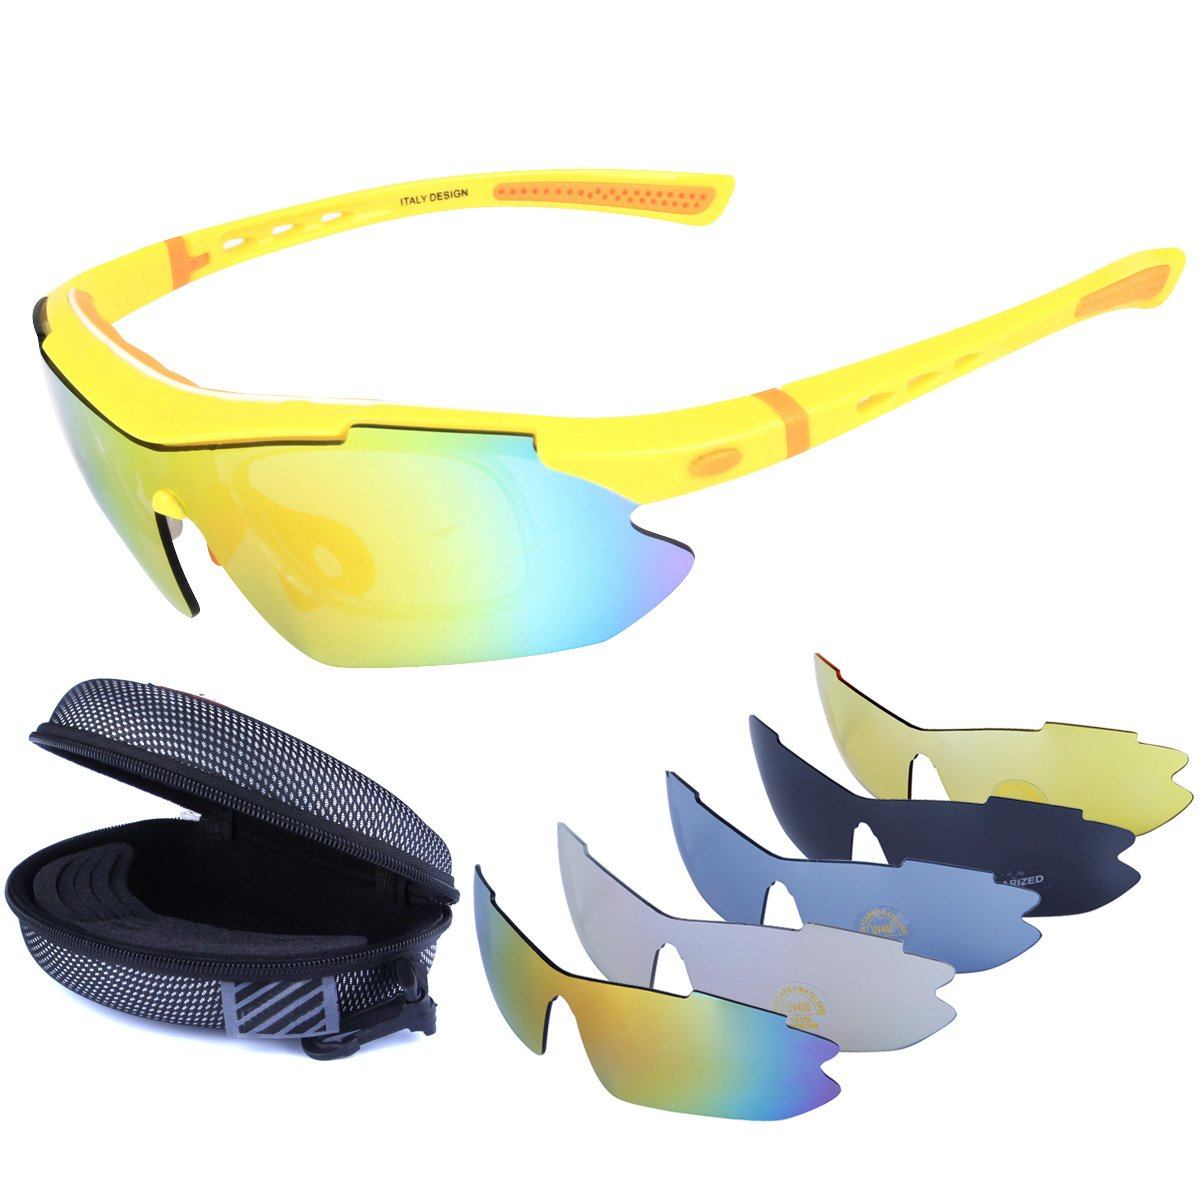 Polarized Sports Sunglasses Cycling Baseball Running Fishing Driving Golf Hiking Biking Outdoor Glasses with 5 Interchangeable Lenses Motorcycle Bicycle Riding Goggles for Men Women (yellow & orange)